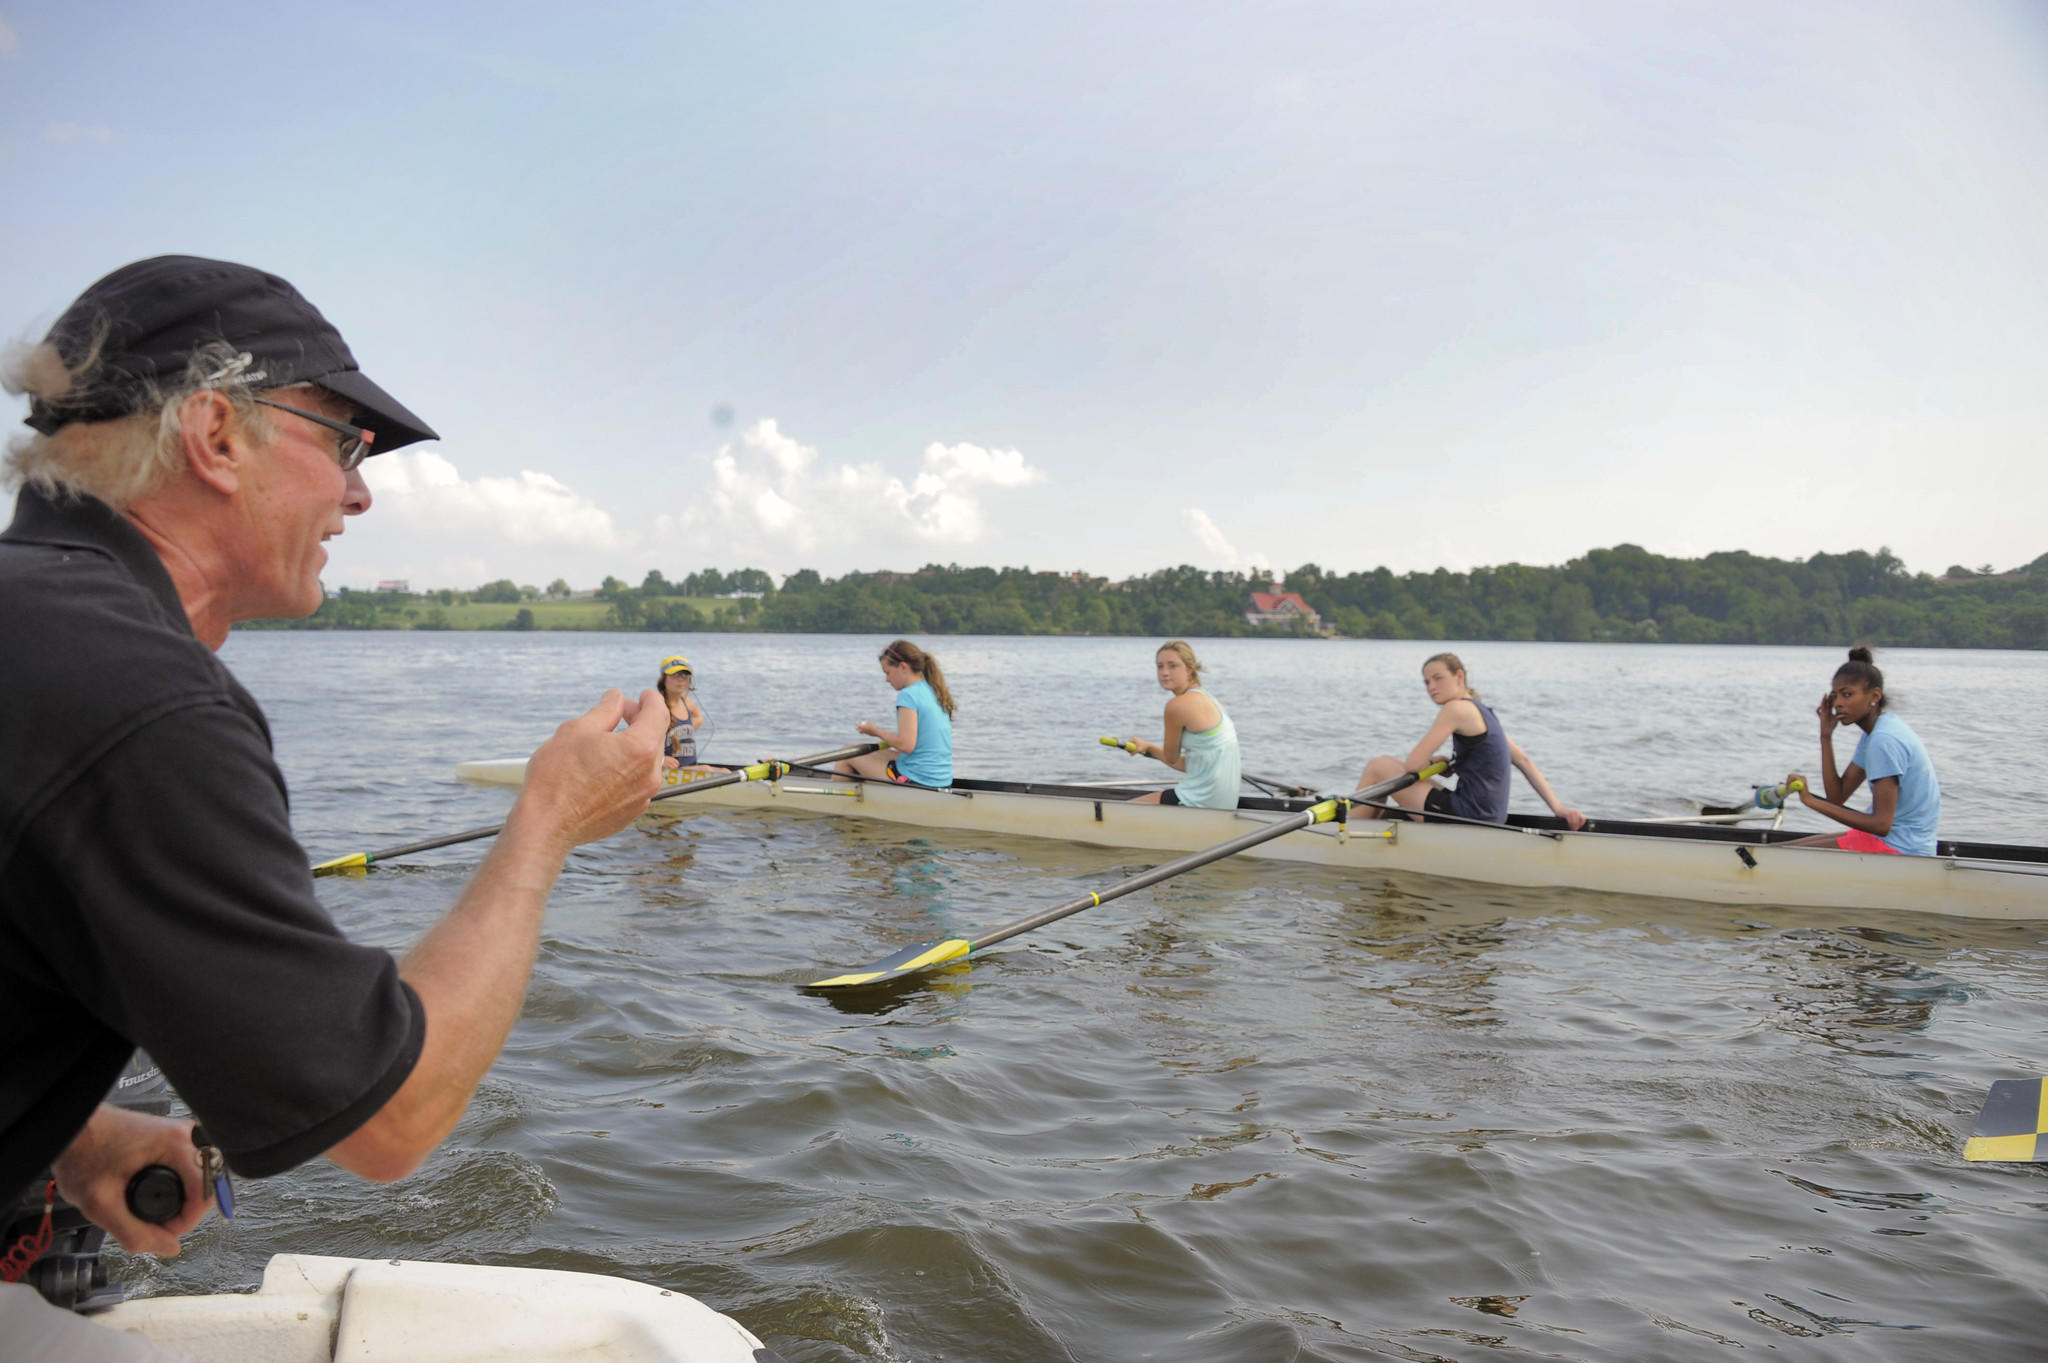 Youth rowing director Judd Anderson instructs during a Baltimore Rowing Club practice on the middle branch of the Patapsco River on Tuesday.